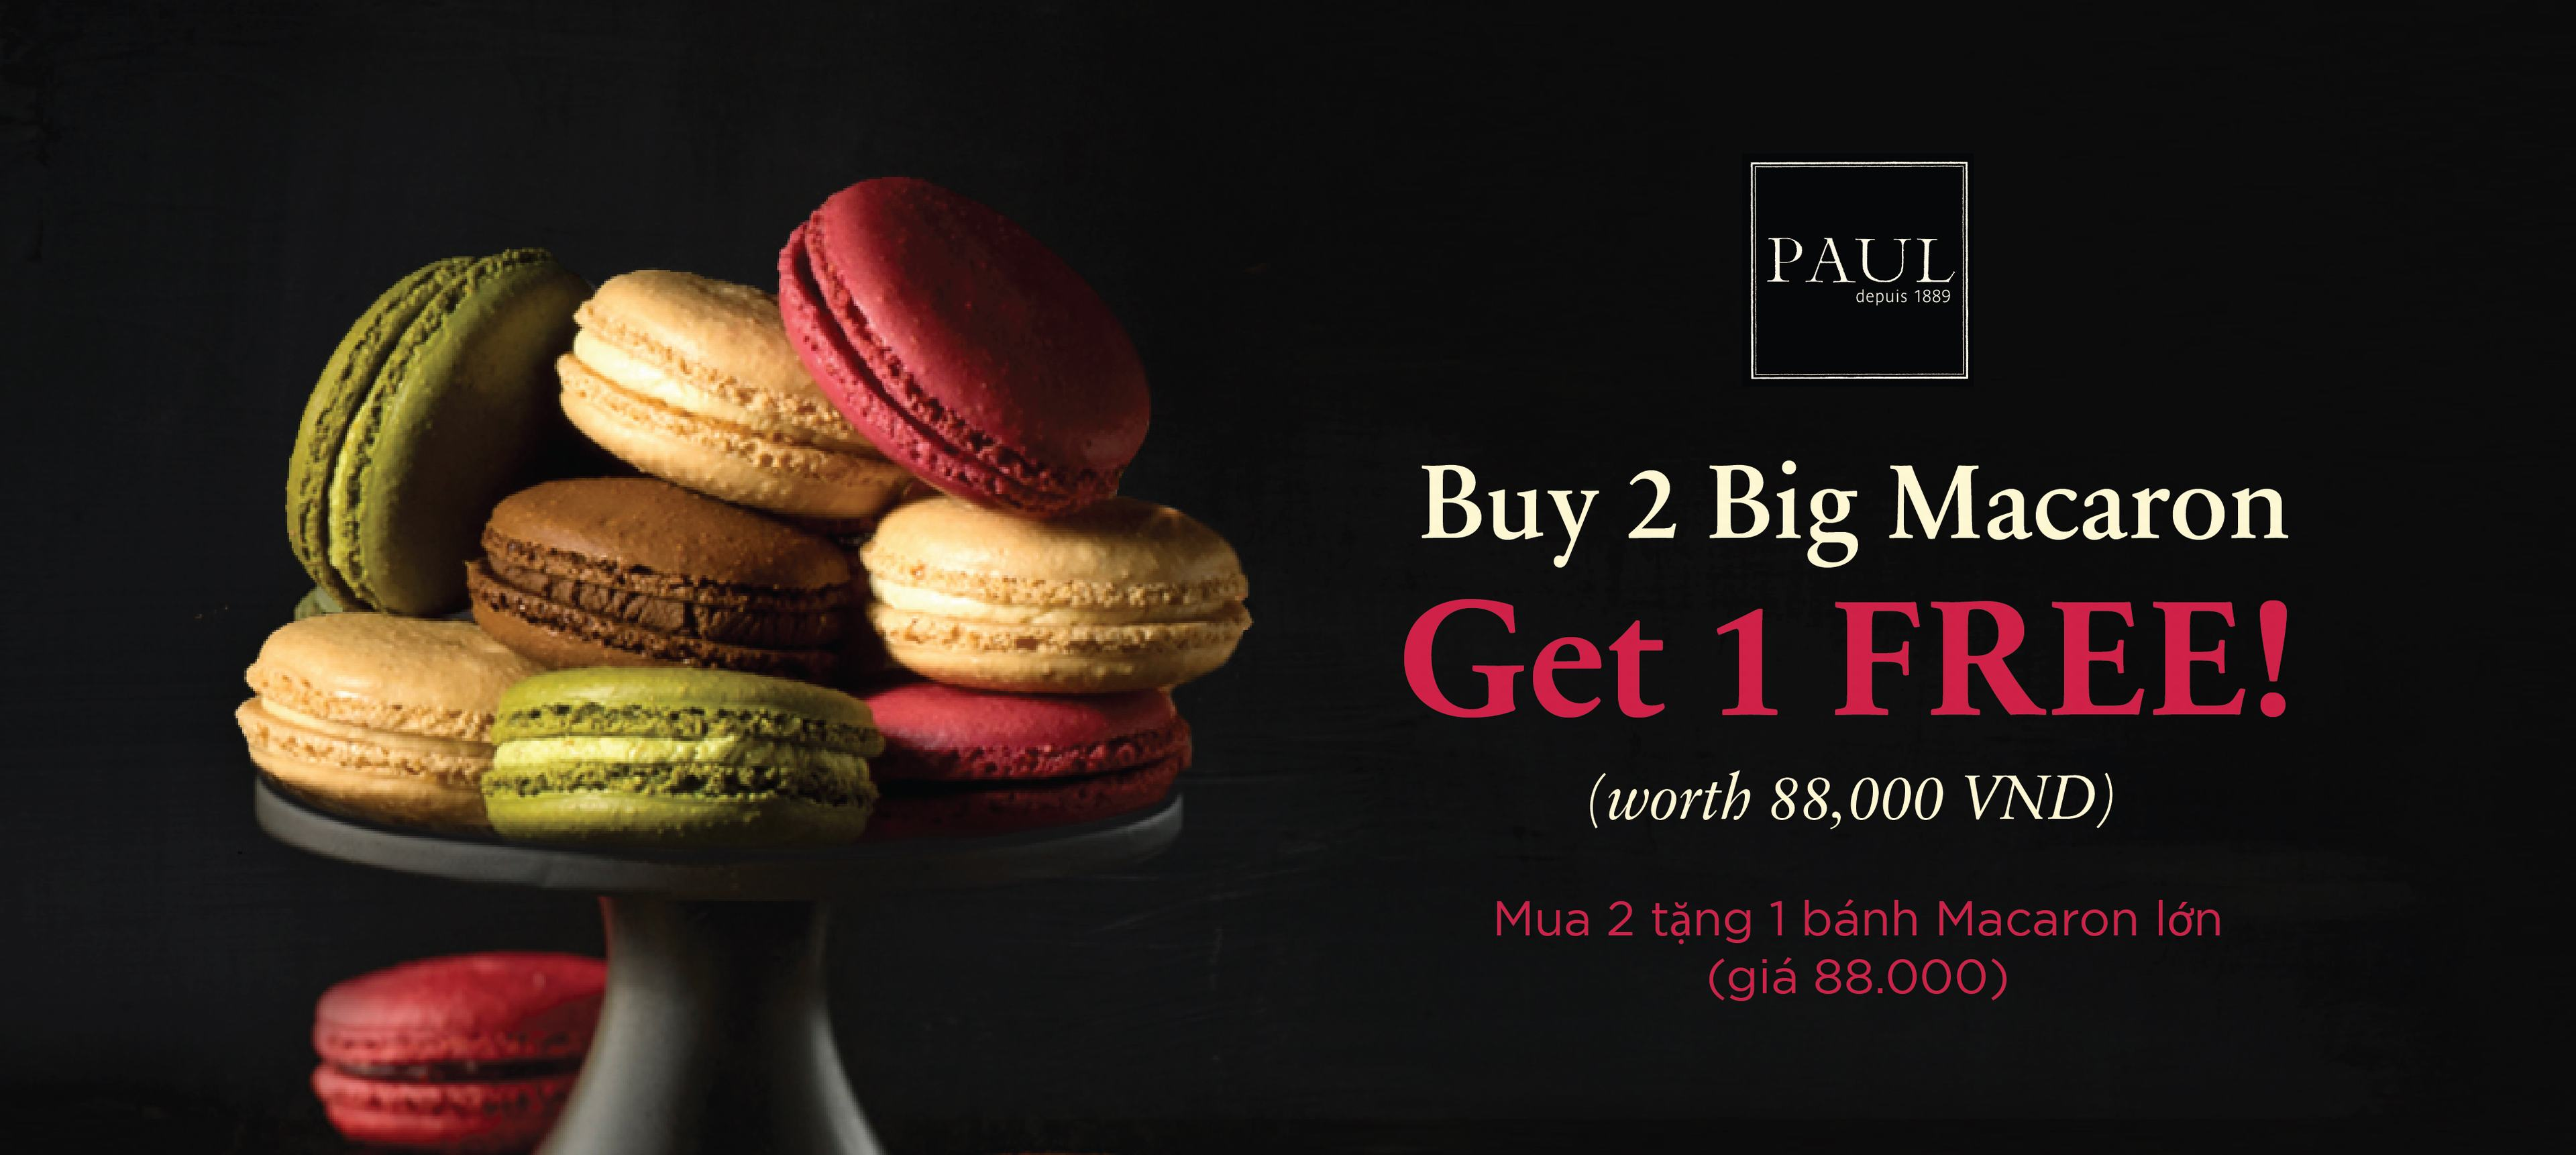 Paul: Buy 2 Big Macarons, get 1 free